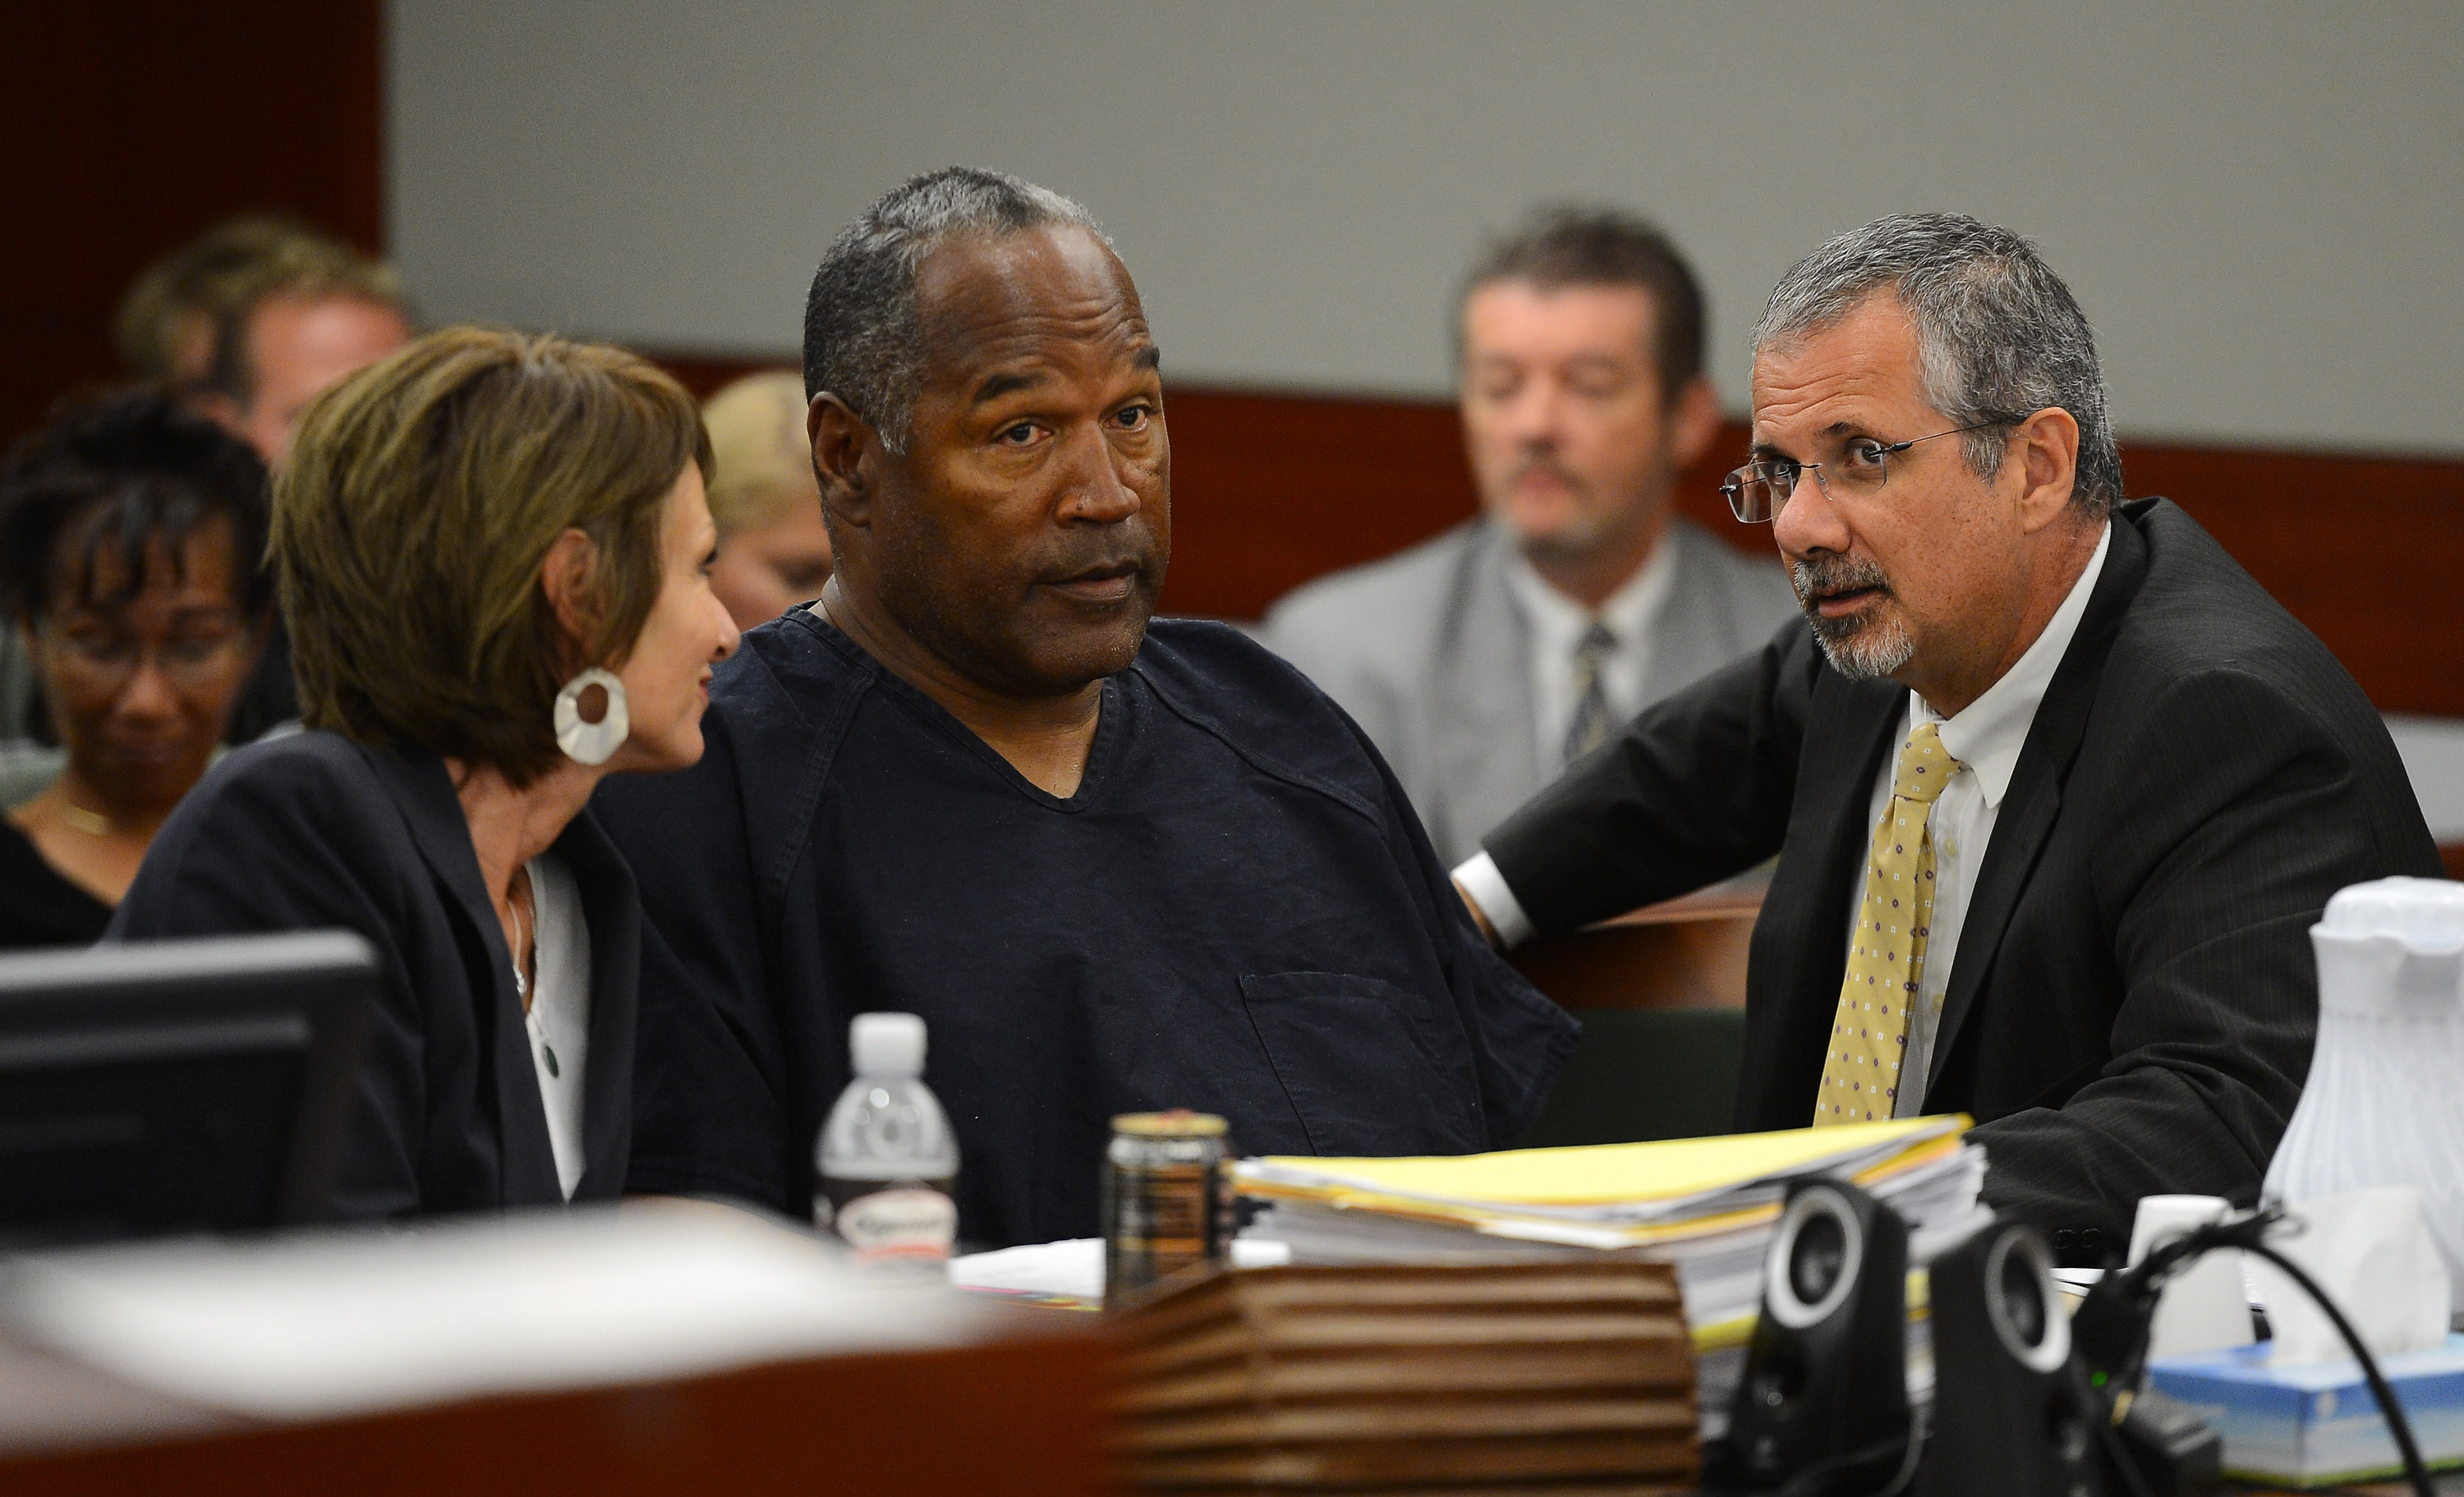 If OJ Simpson Got Arrested For Armed Robbery, Here's How it Happened